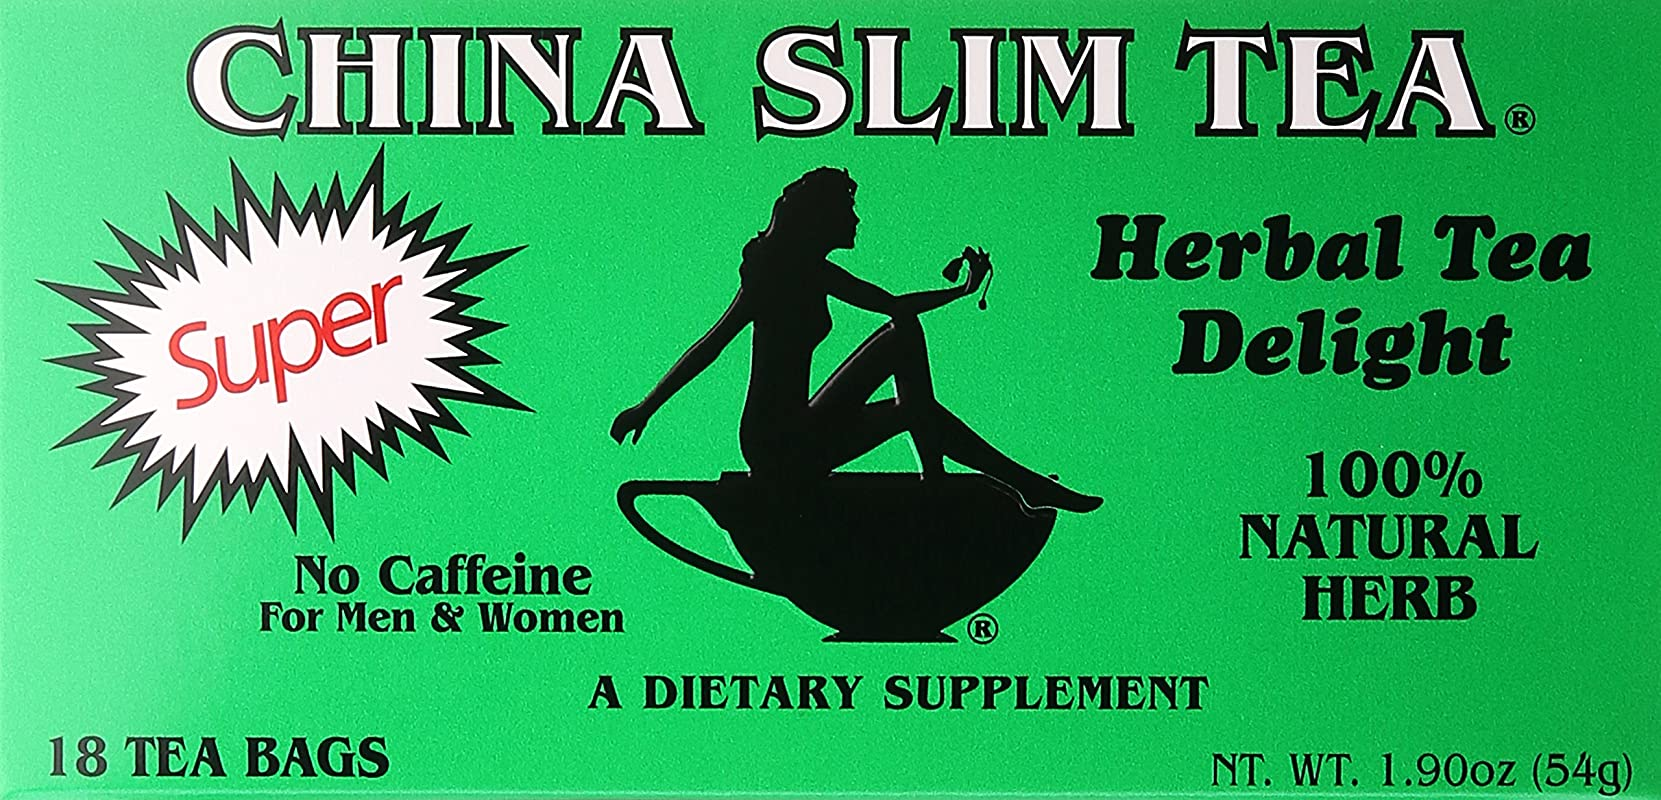 China Slim Tea Super Slim Dieter S Delight All Natural 18 Tea Bags